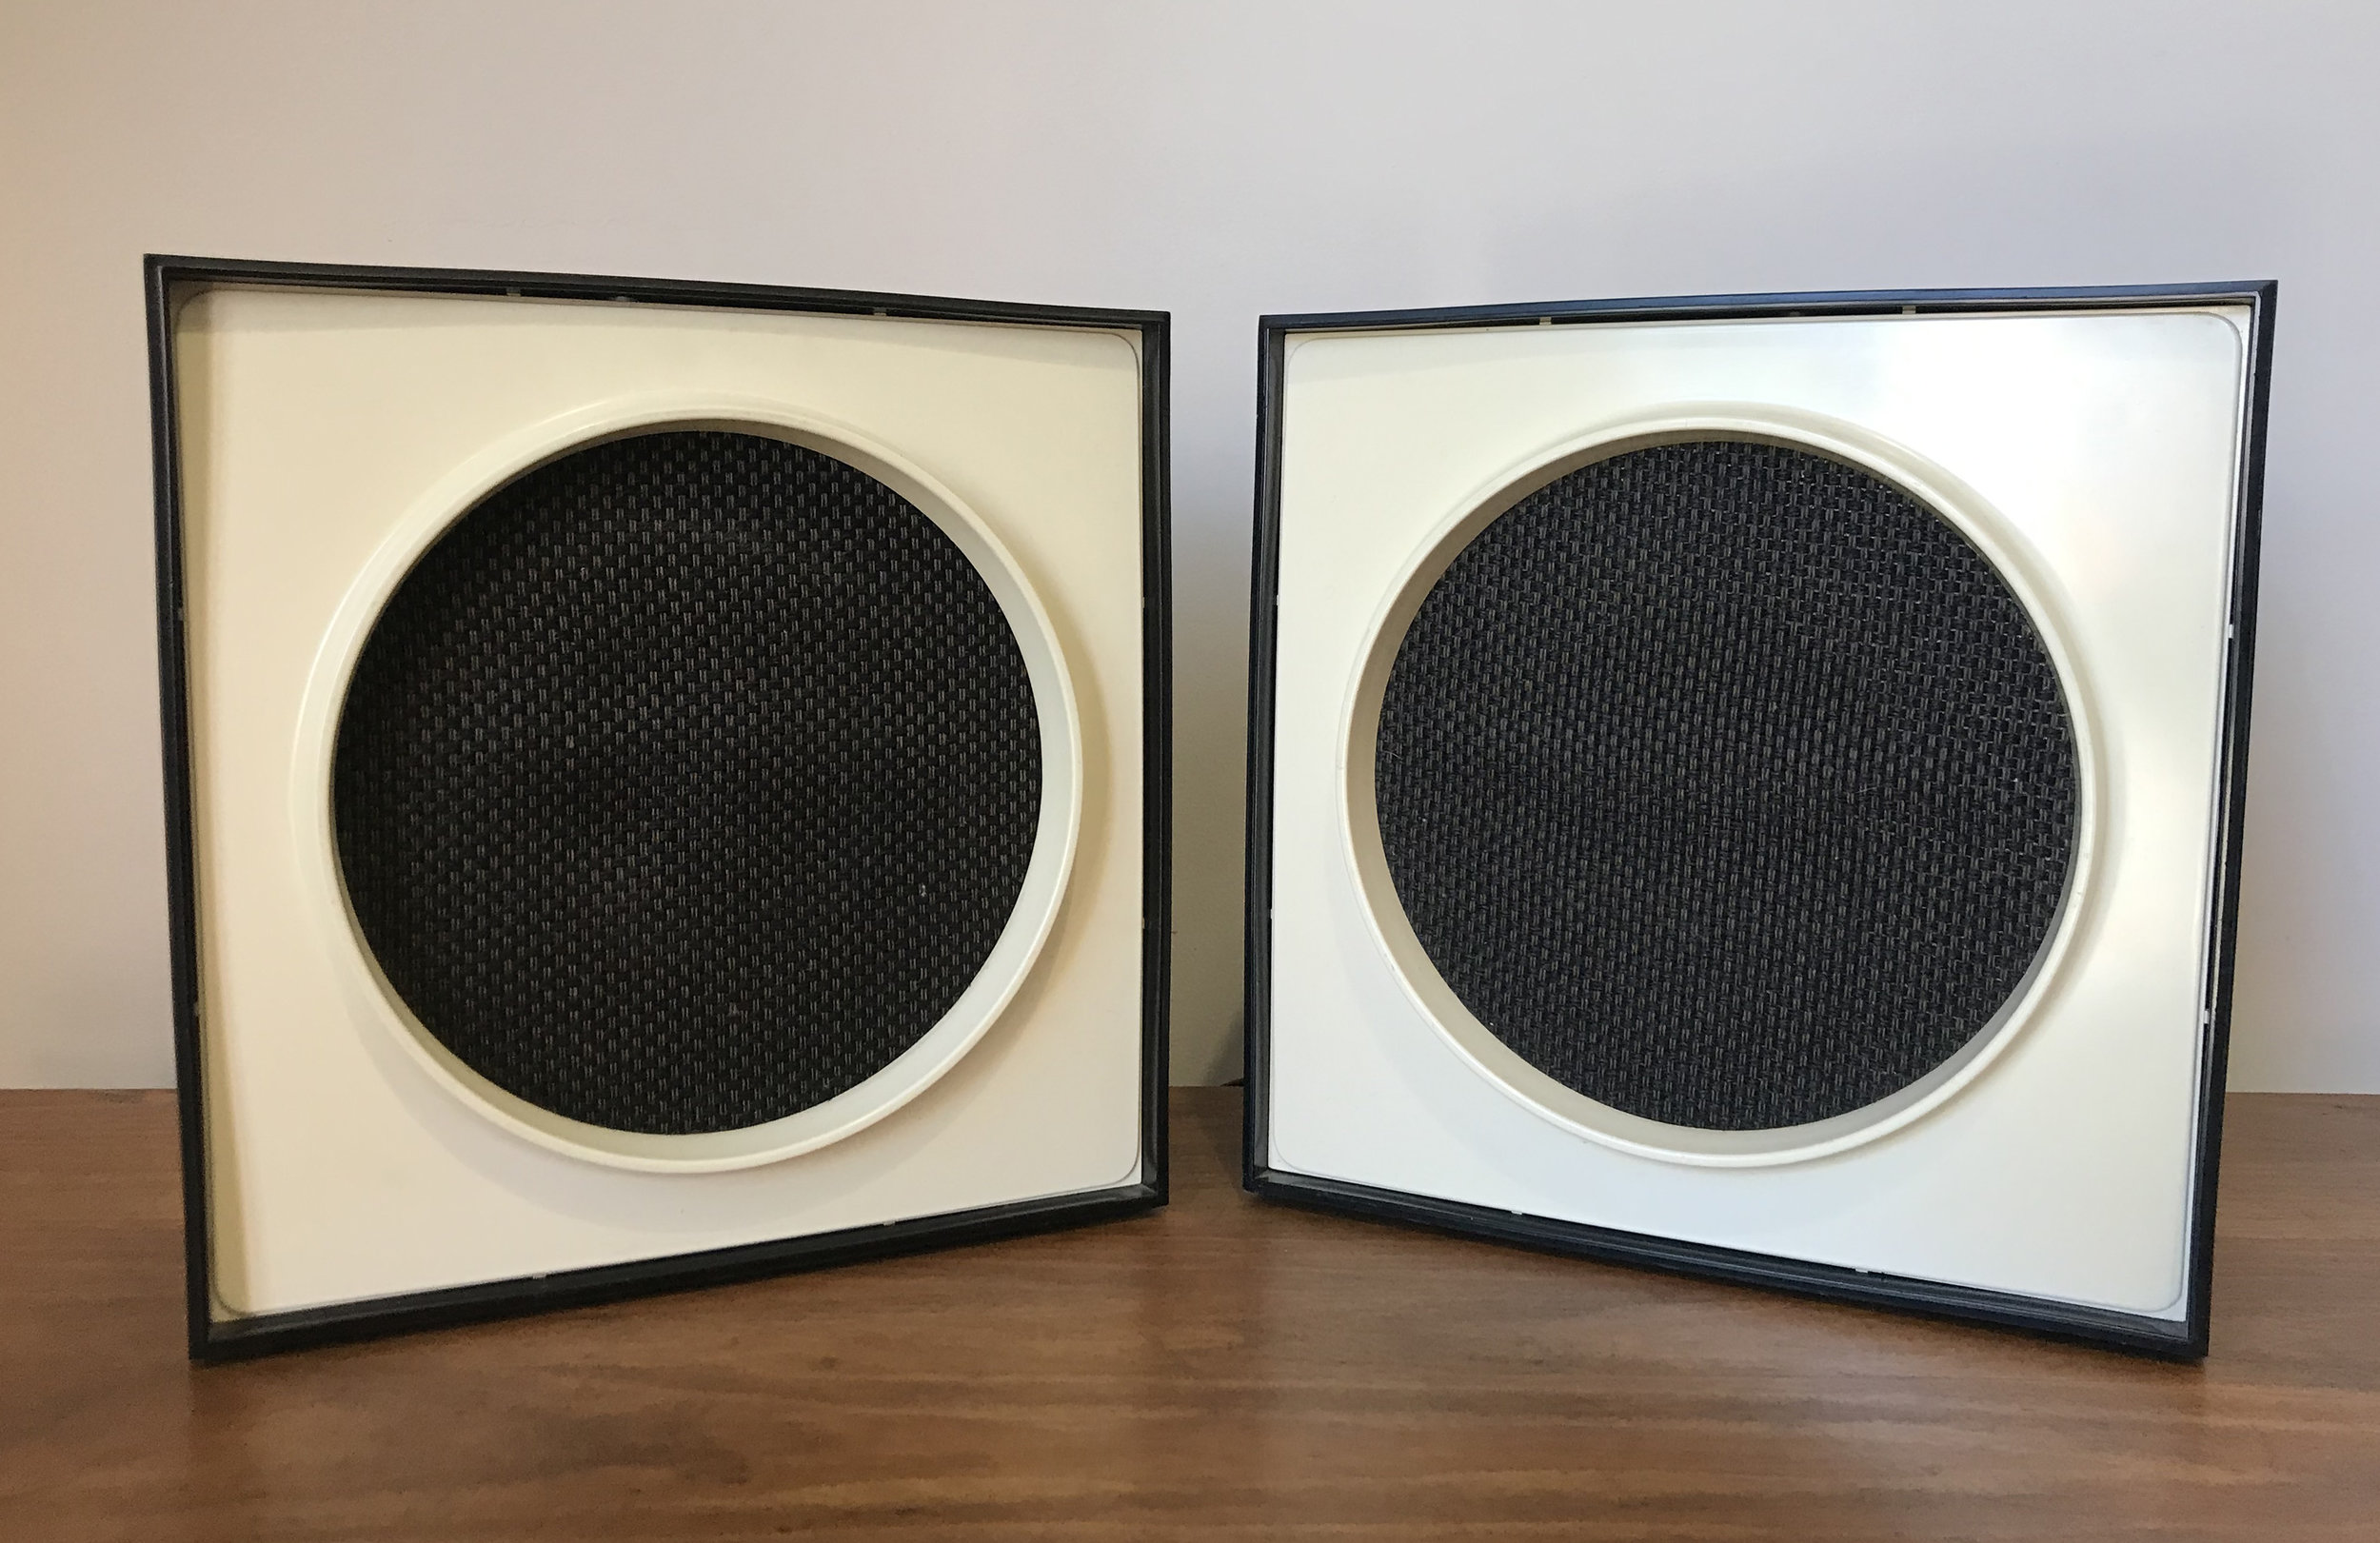 MID CENTURY MOD SPACE AGE DESK SPEAKERS